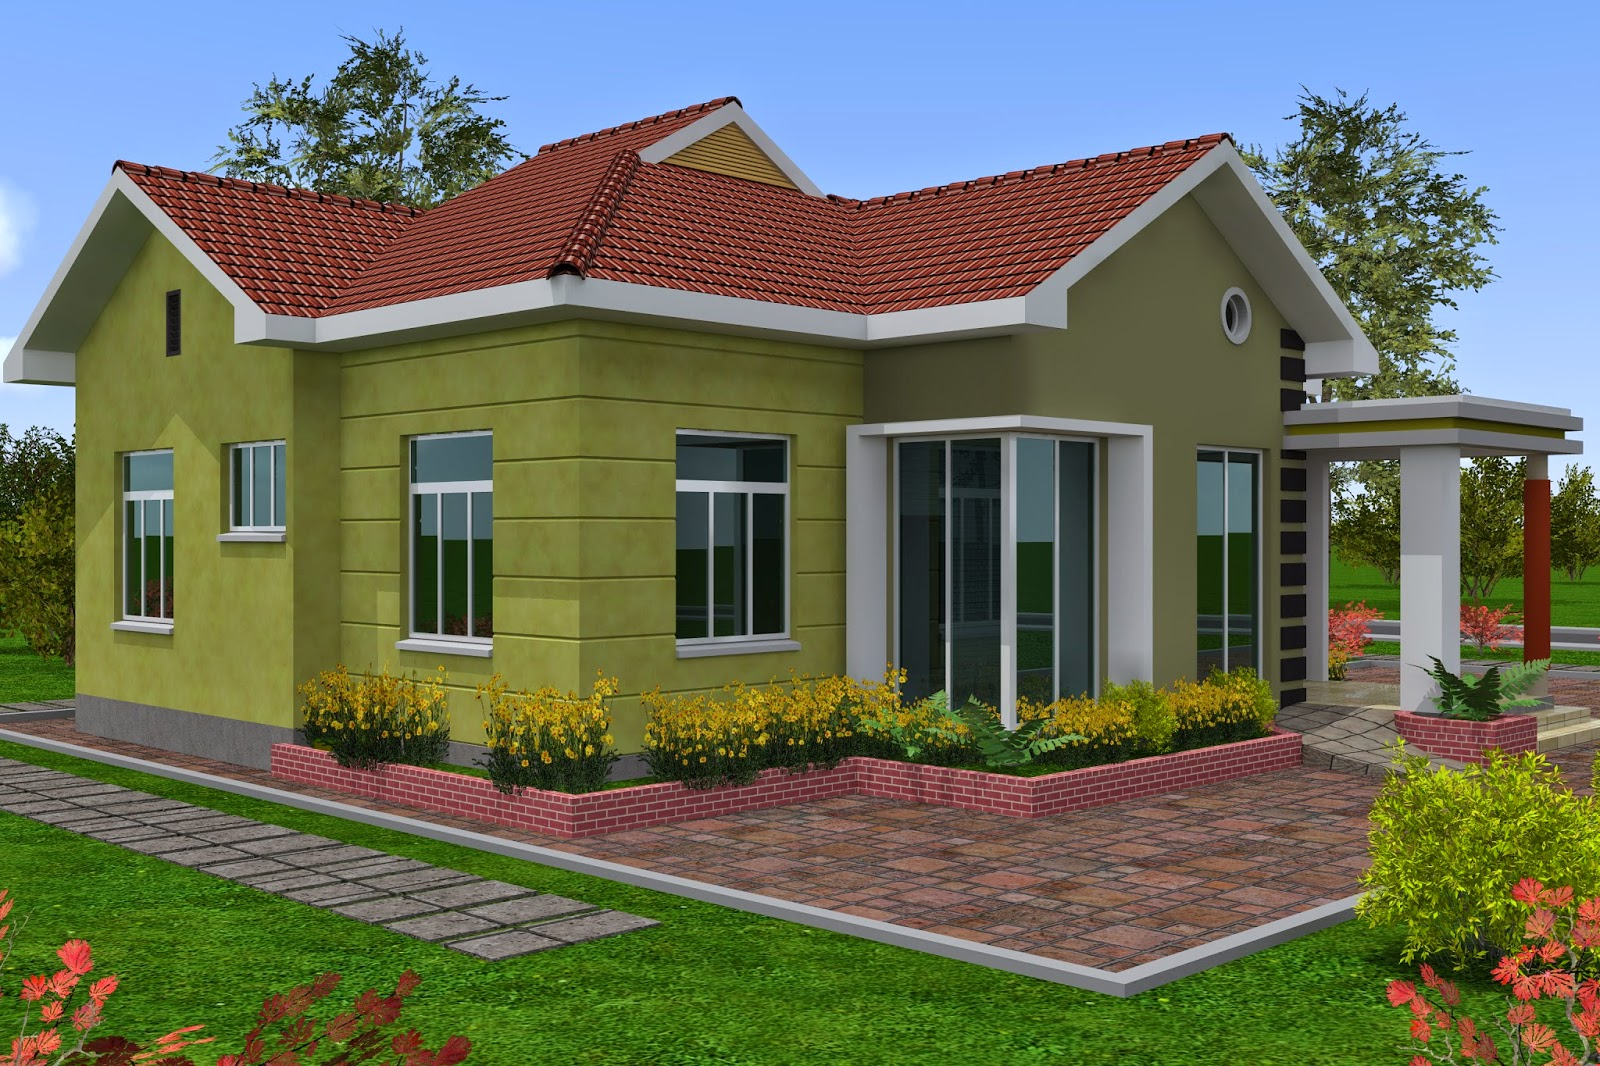 Berot com sample building for Decoration za nyumba